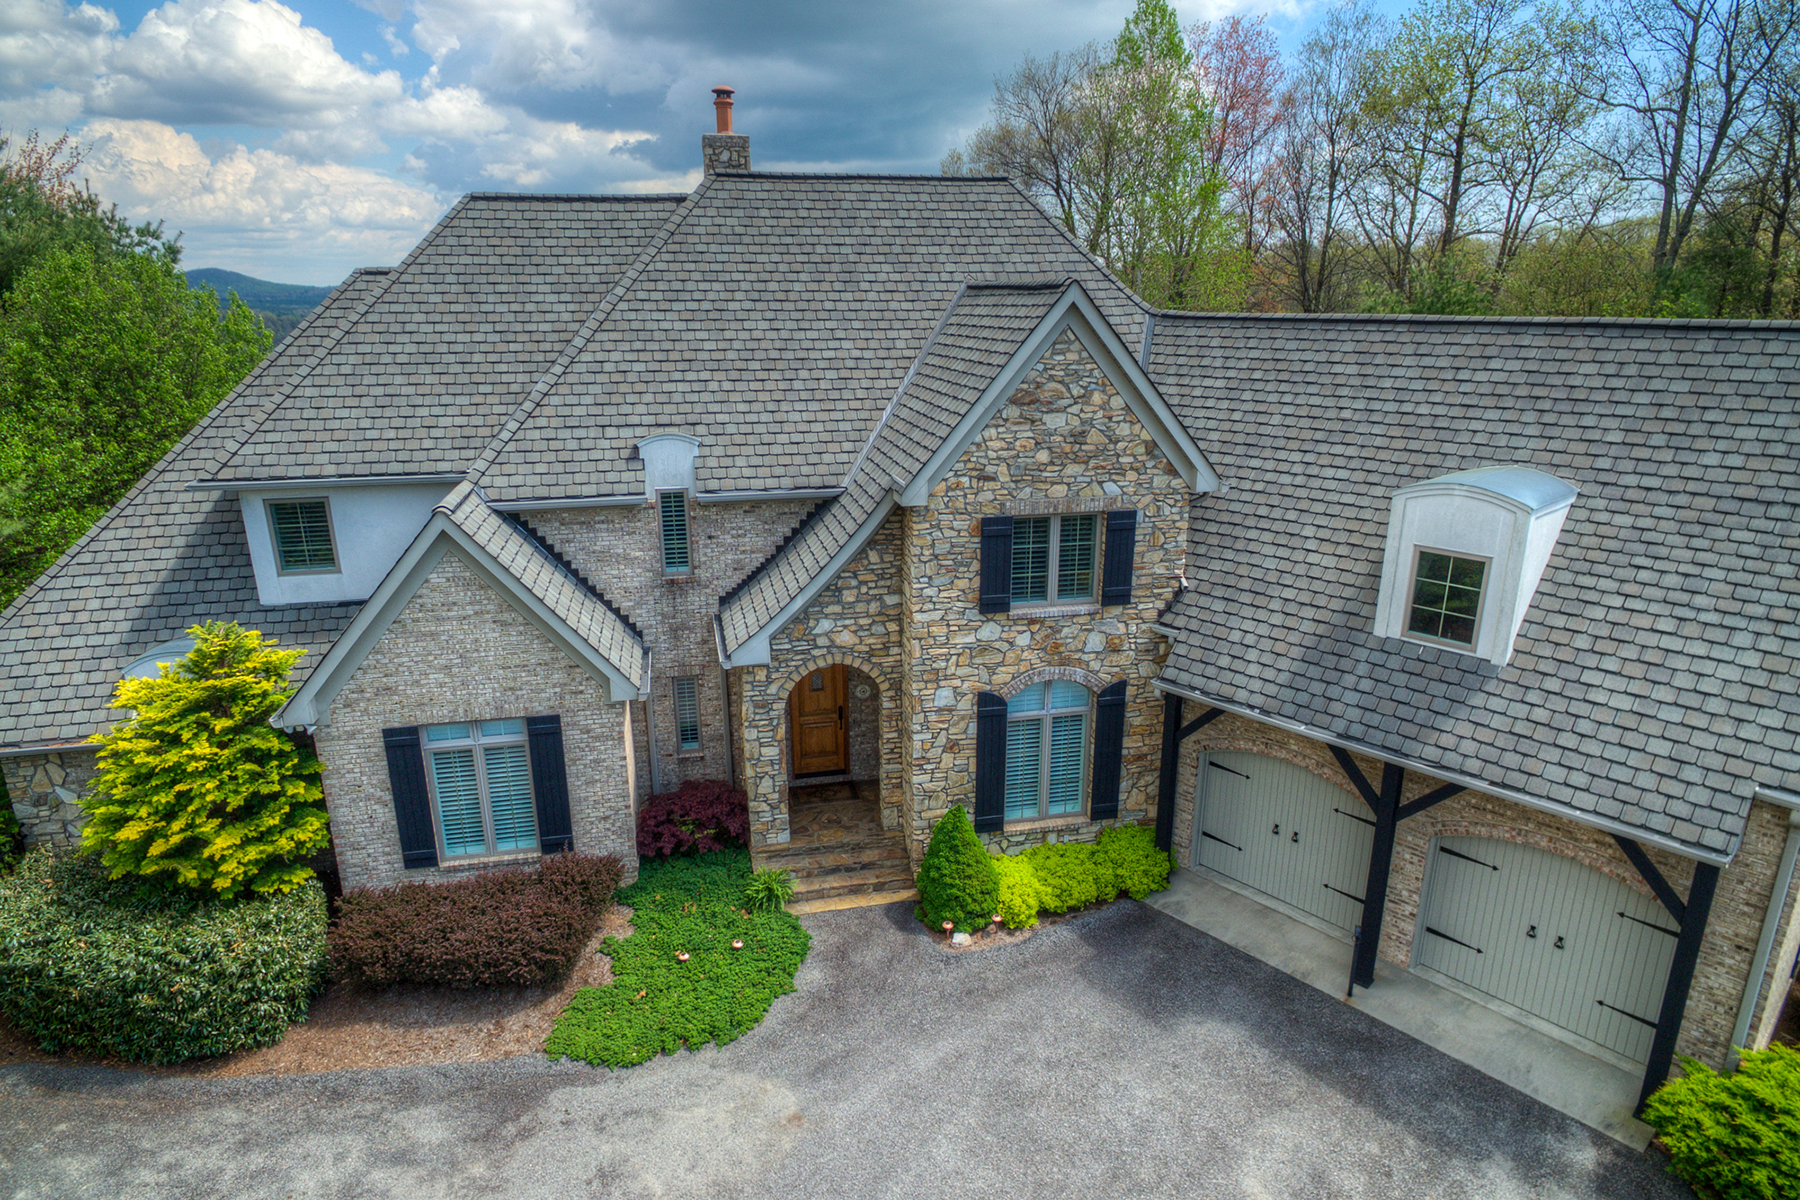 Single Family Home for Sale at OLDE BEAU GOLF & CC 164 Saint Andrews Dr Roaring Gap, North Carolina, 28668 United States